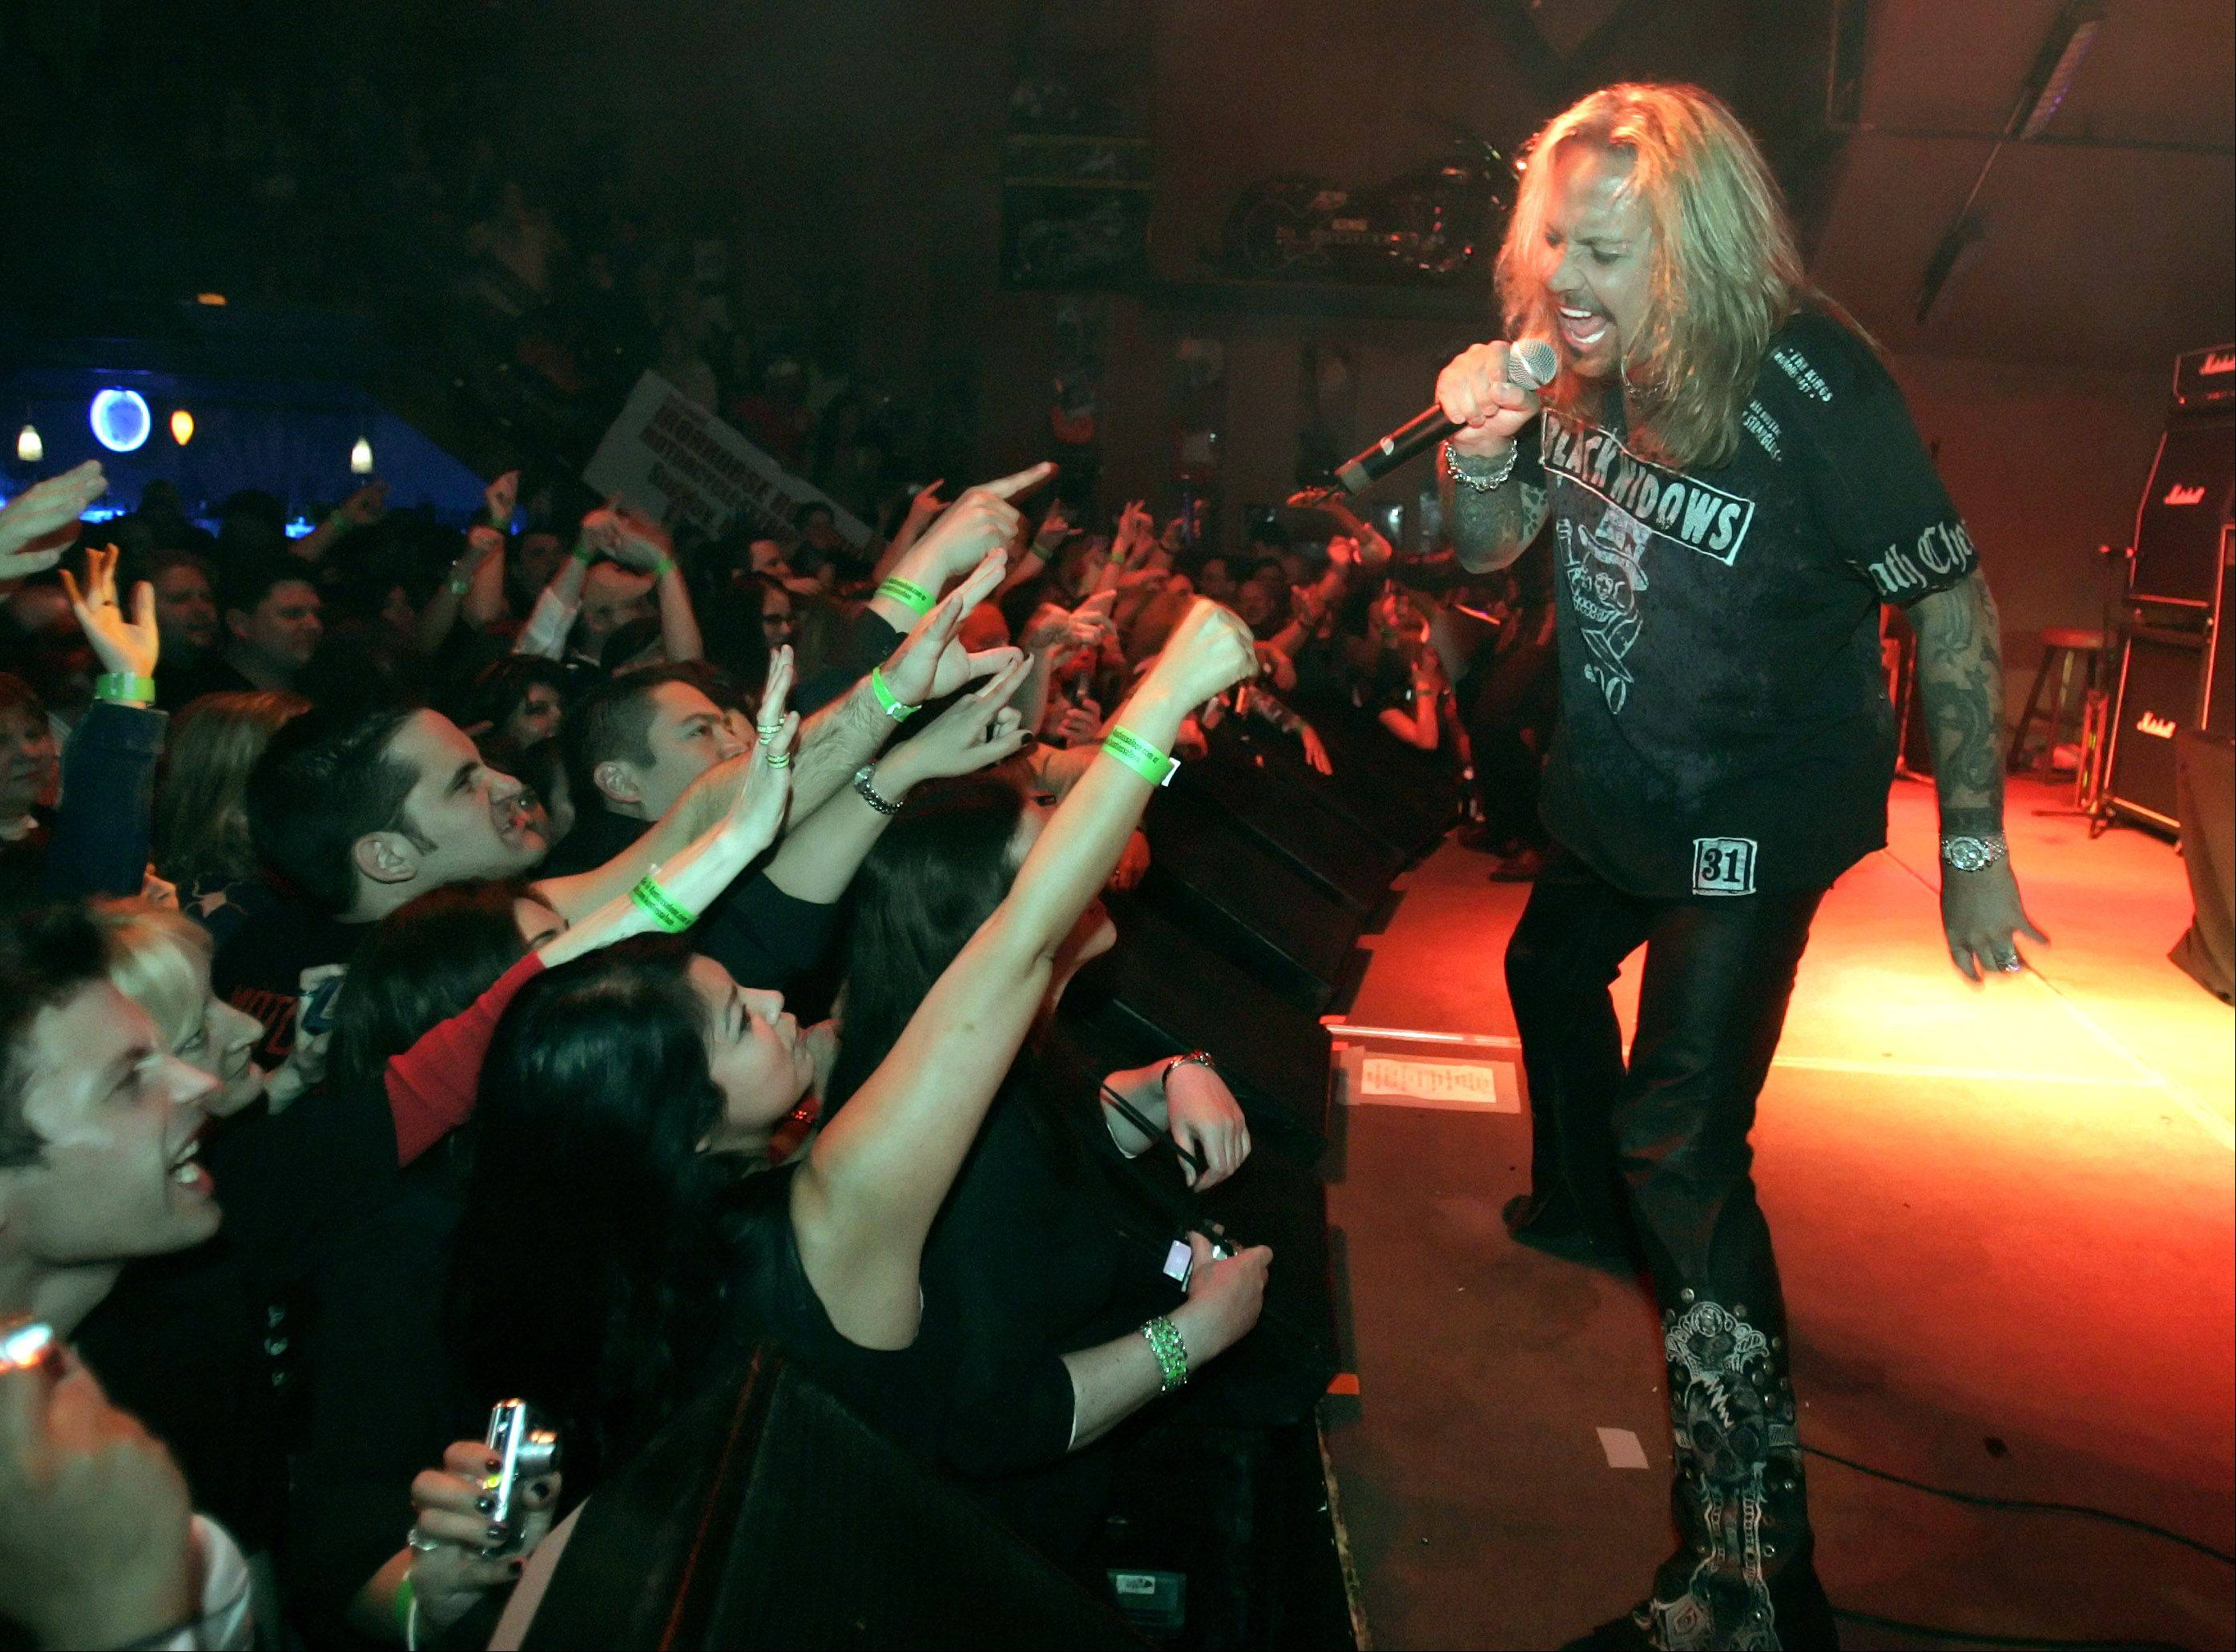 Vince Neil and M�tley Cr�e share the bill with Poison and New York Dolls at the First Midwest Bank Amphitheatre in Tinley Park on Friday.